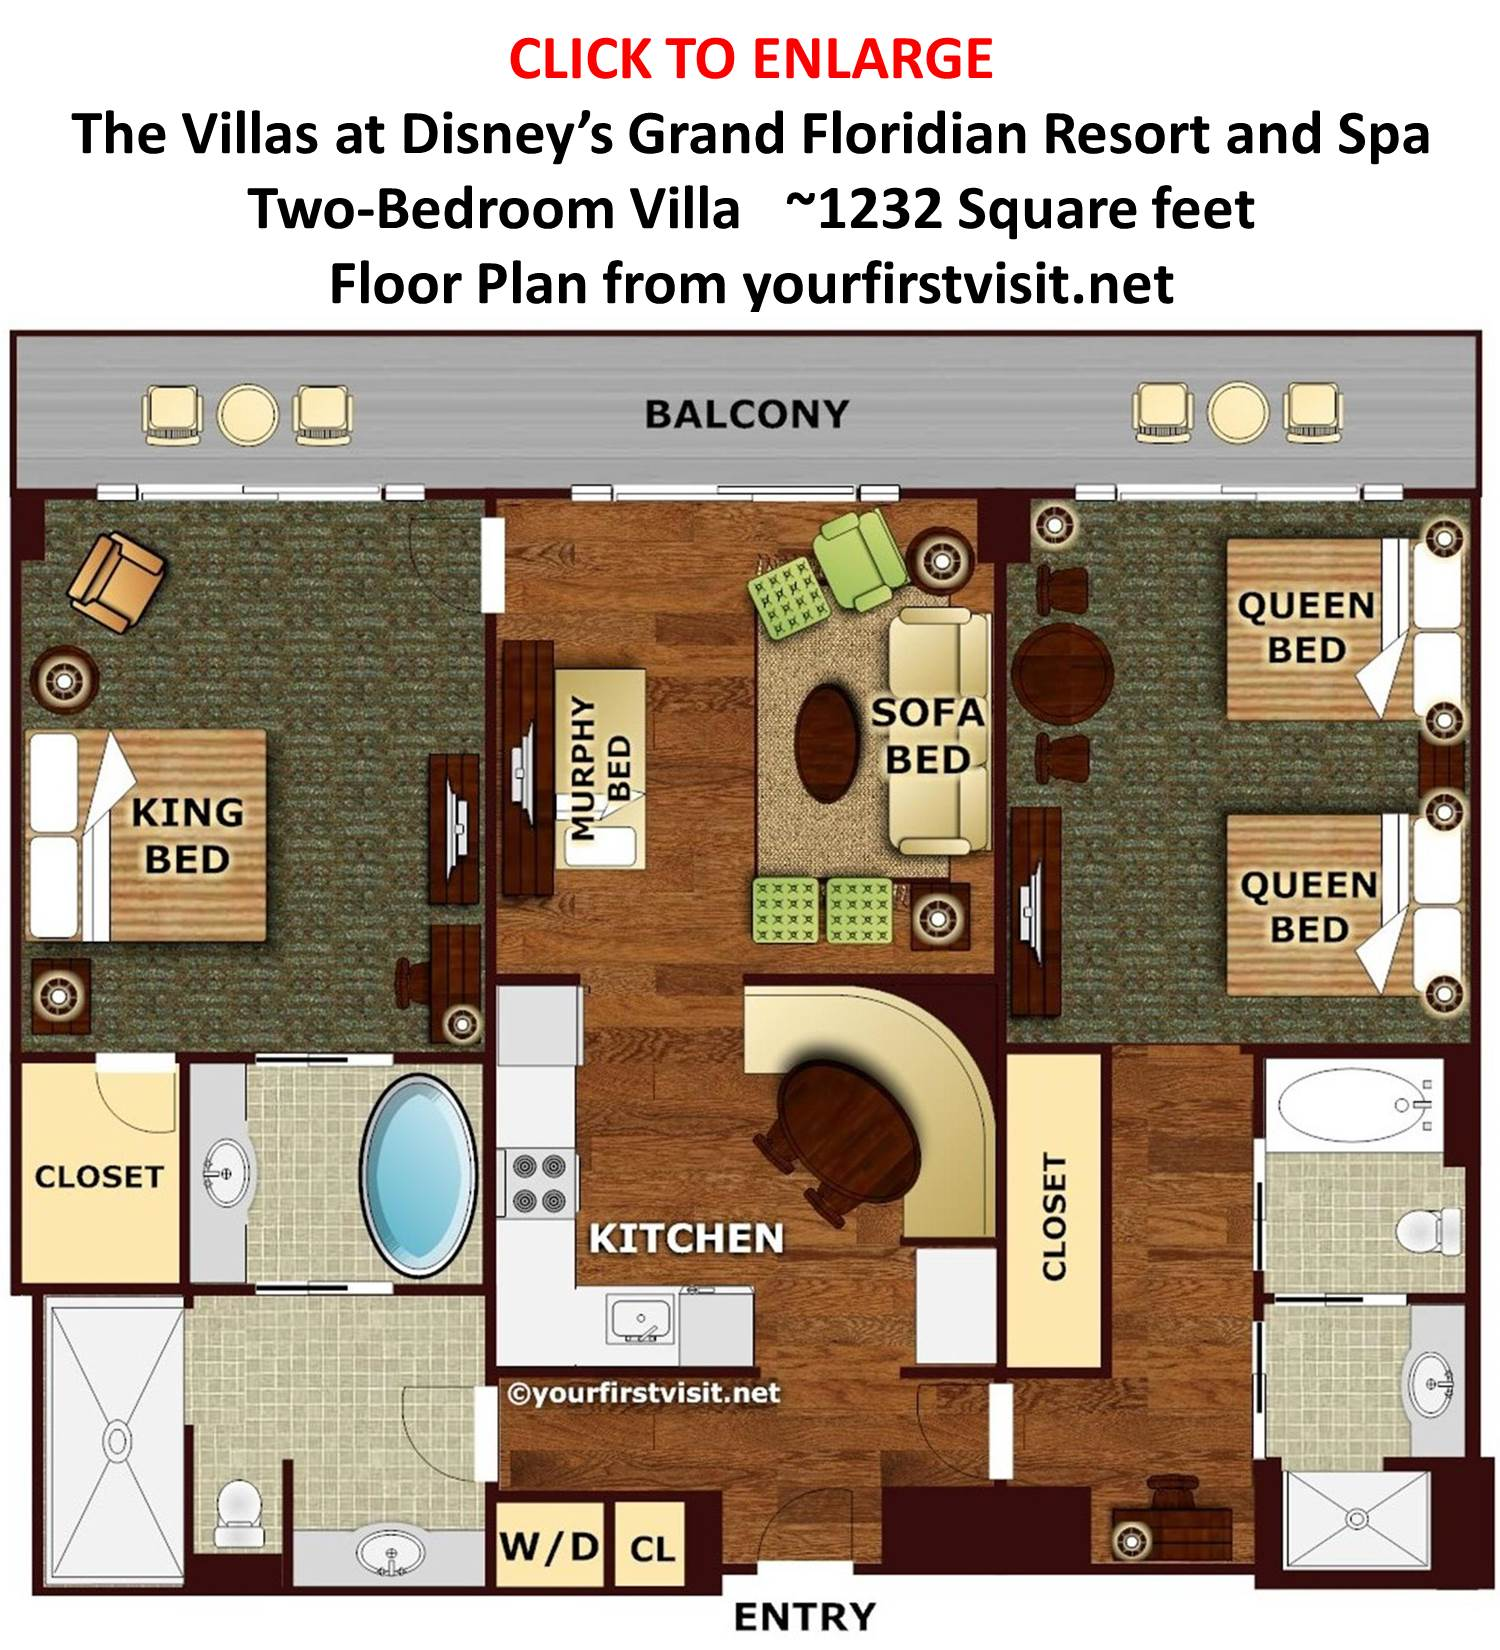 First Floor Master Bedroom The Second Bedroom Or Studio At The Villas At Disney S